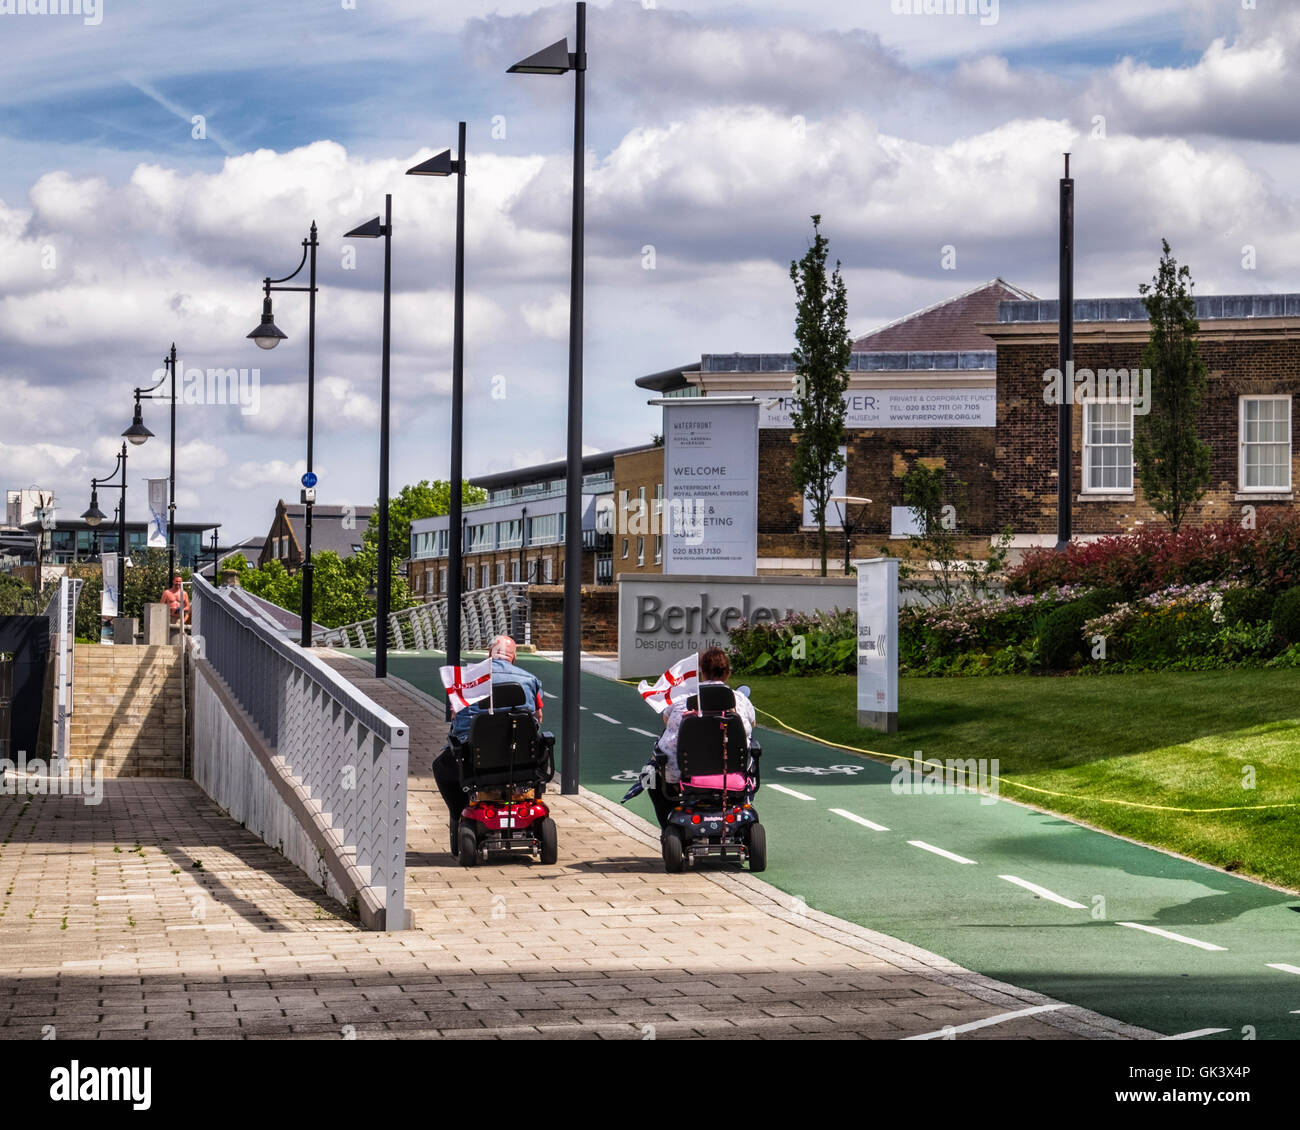 Two disabled people on mobility scooters with English Saint George flags - Thames path, London - Stock Image